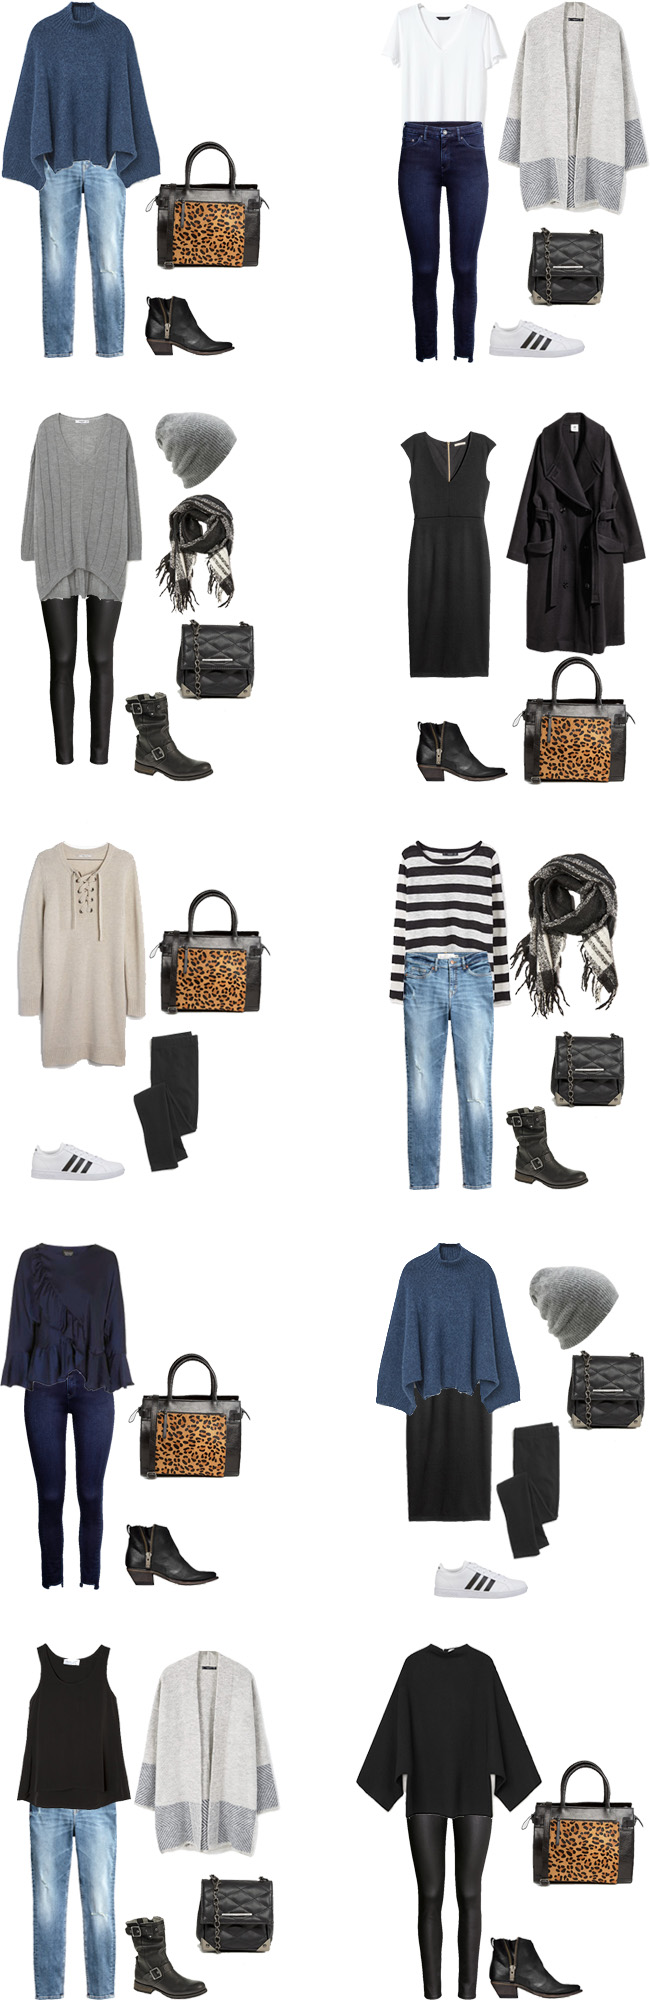 What To Wear For 2 Weeks In Europe For Christmas